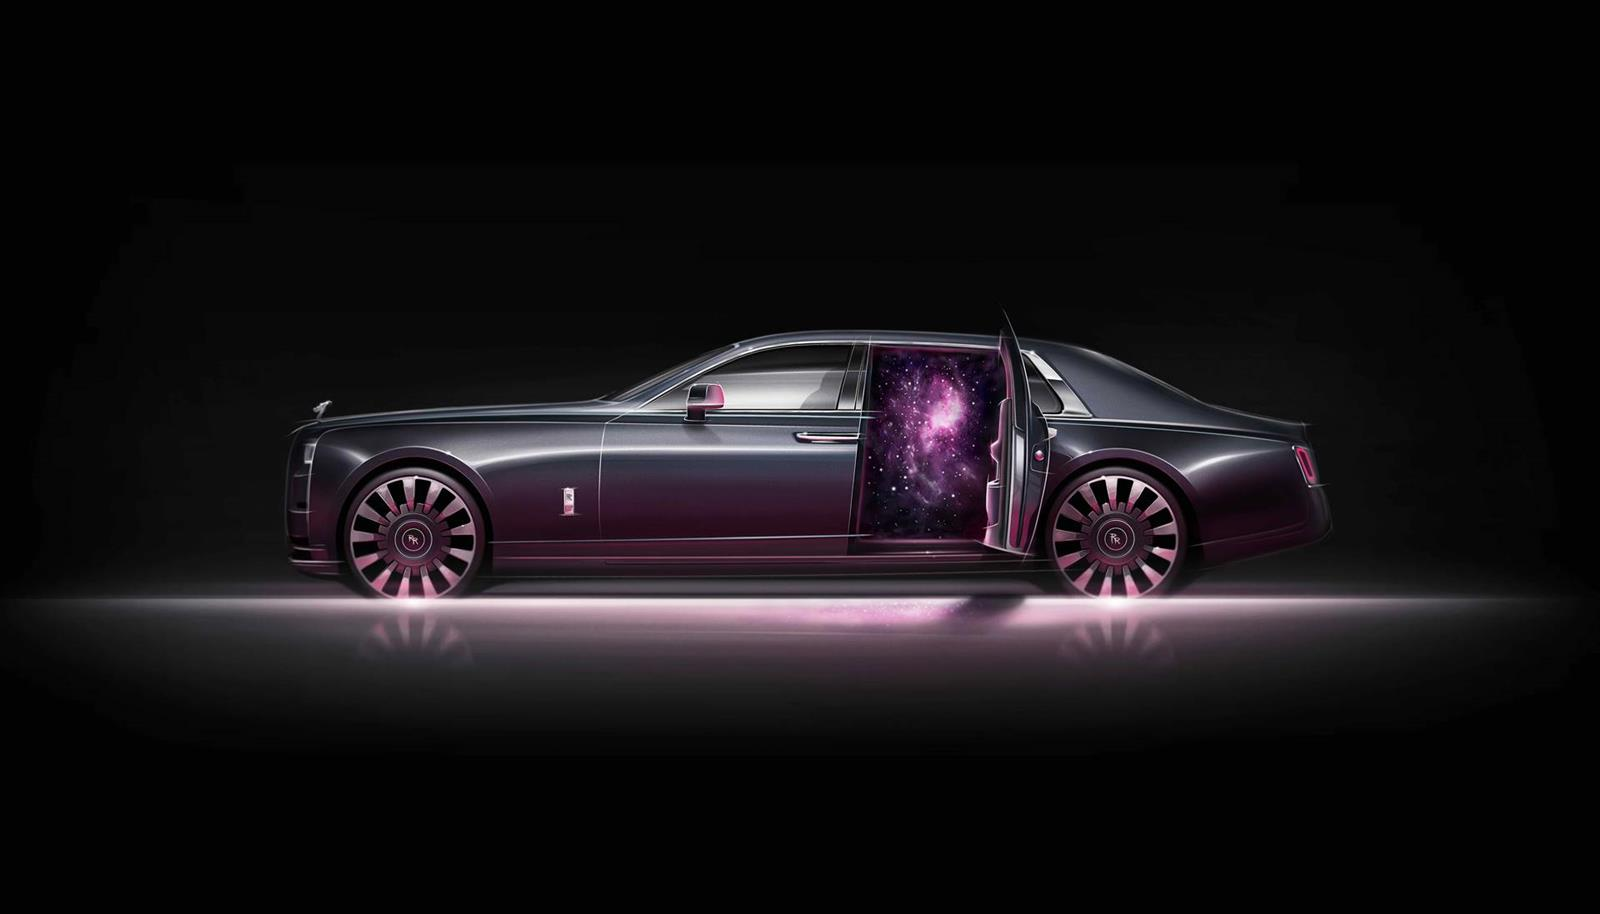 2021 Rolls-Royce Phantom Tempus Collection